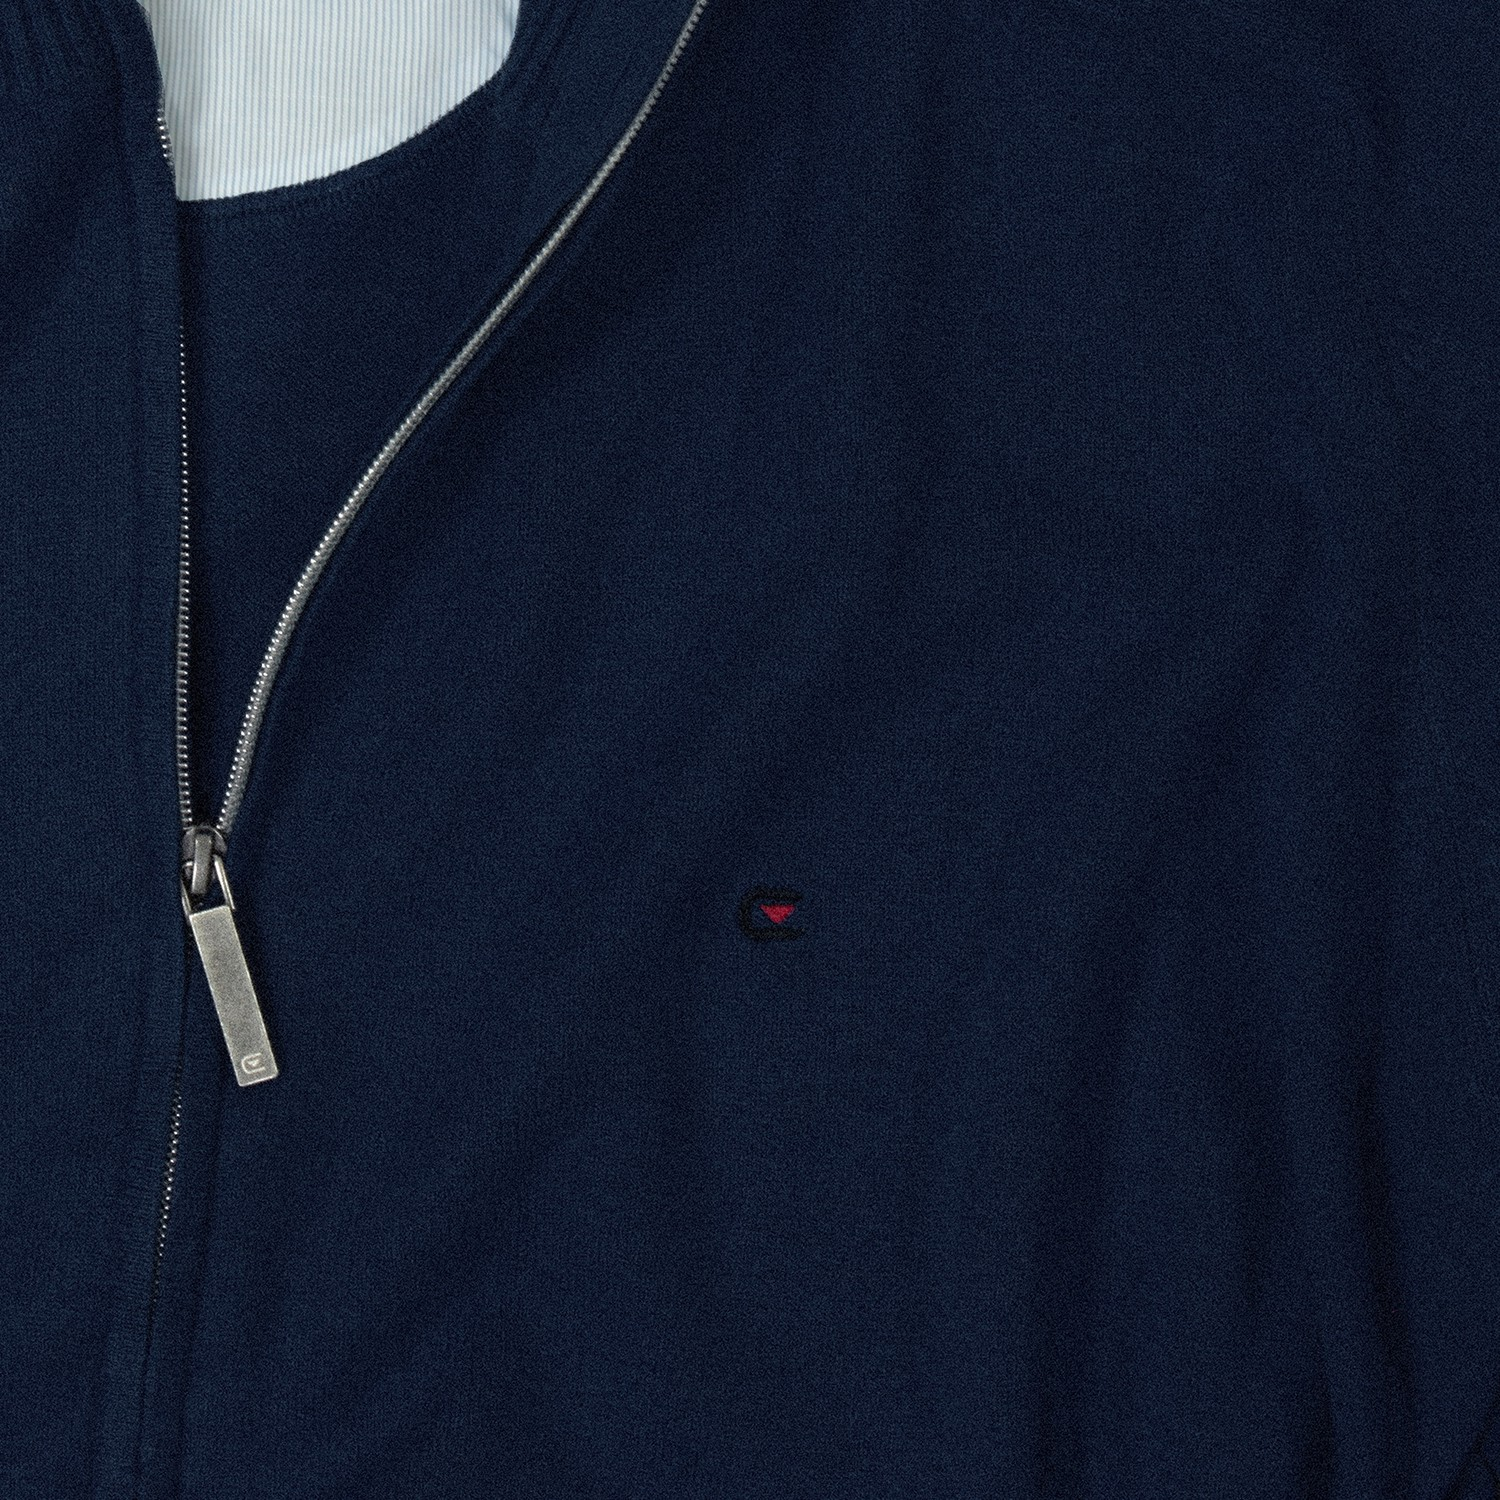 Detail Image to Blue uni cardigan by Casamoda in oversizes up to 6XL